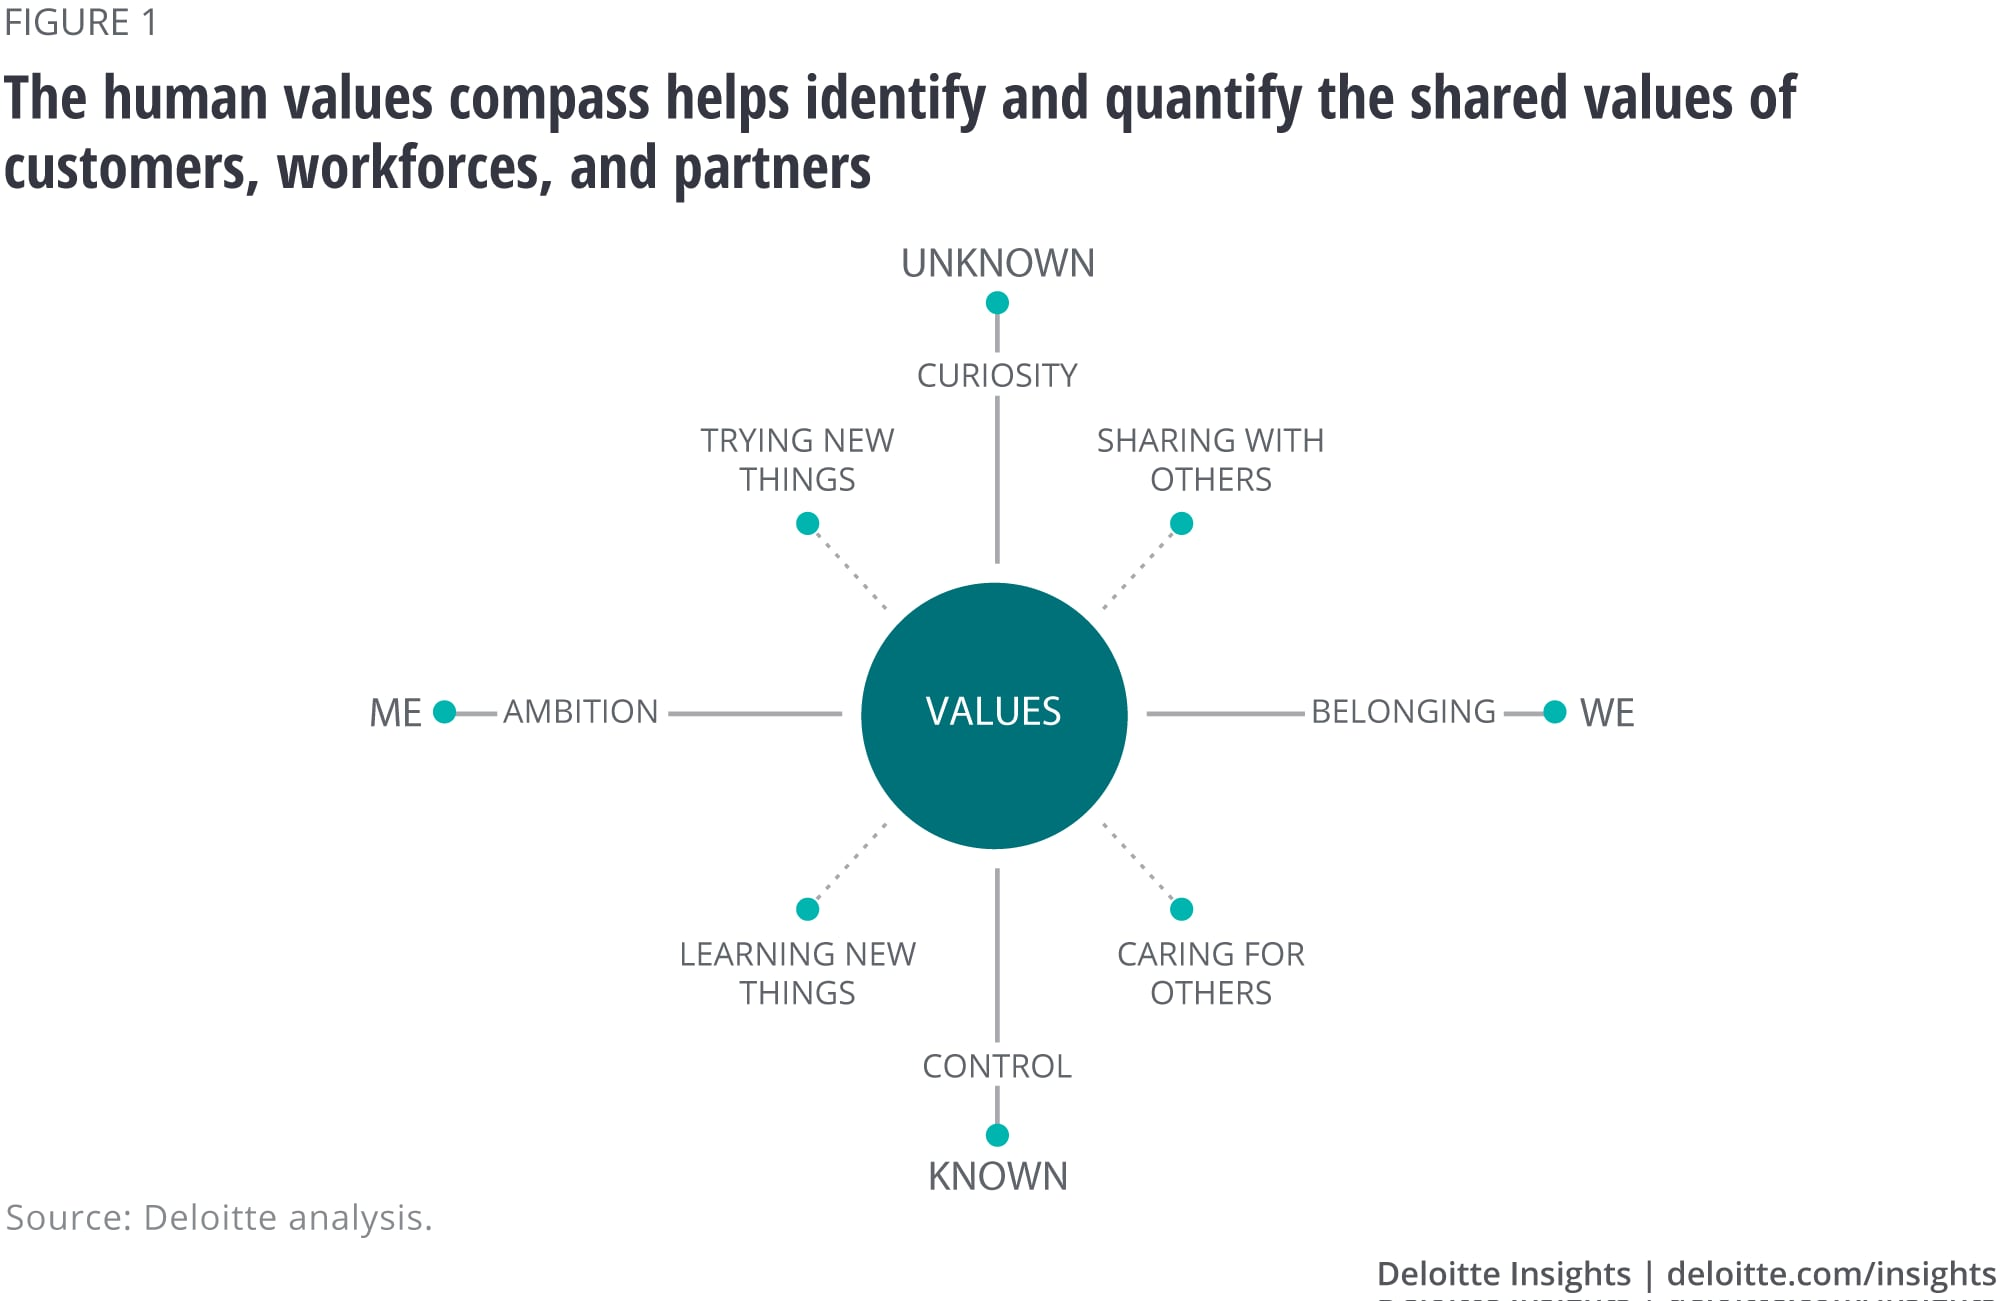 The human values compass helps identify and quantify the shared values of customers, workforces, and partners